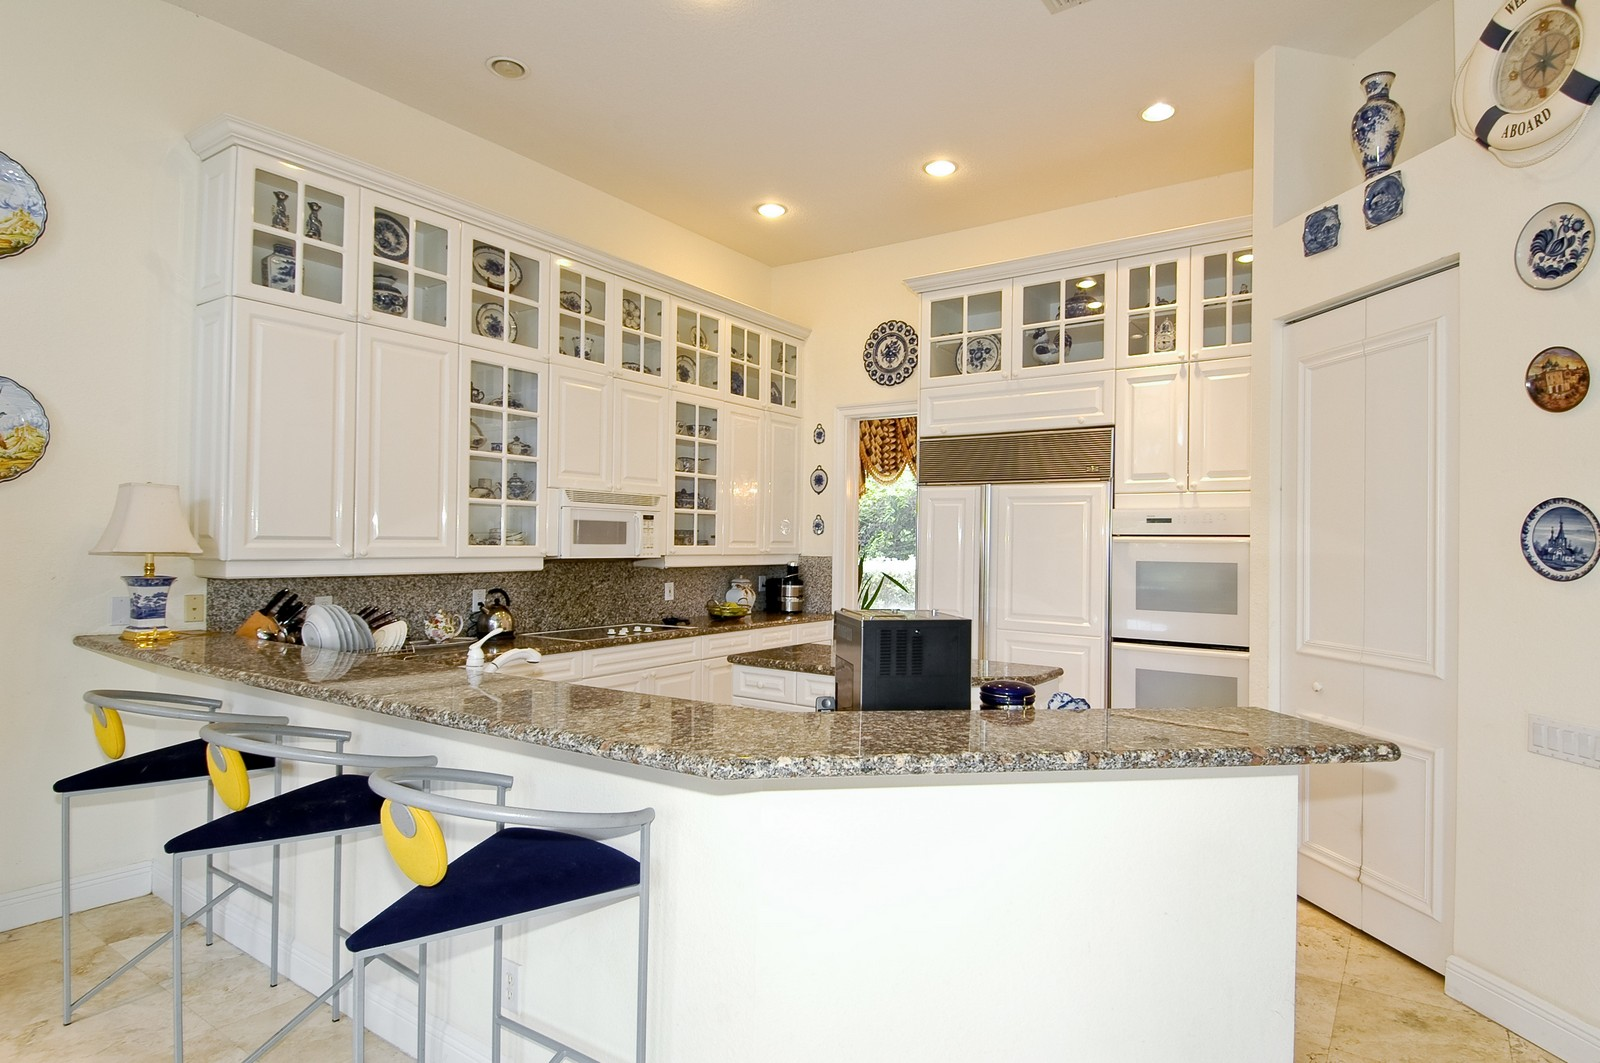 Real Estate Photography - 1081 Habor, Hollywood, FL, 33019 - Kitchen